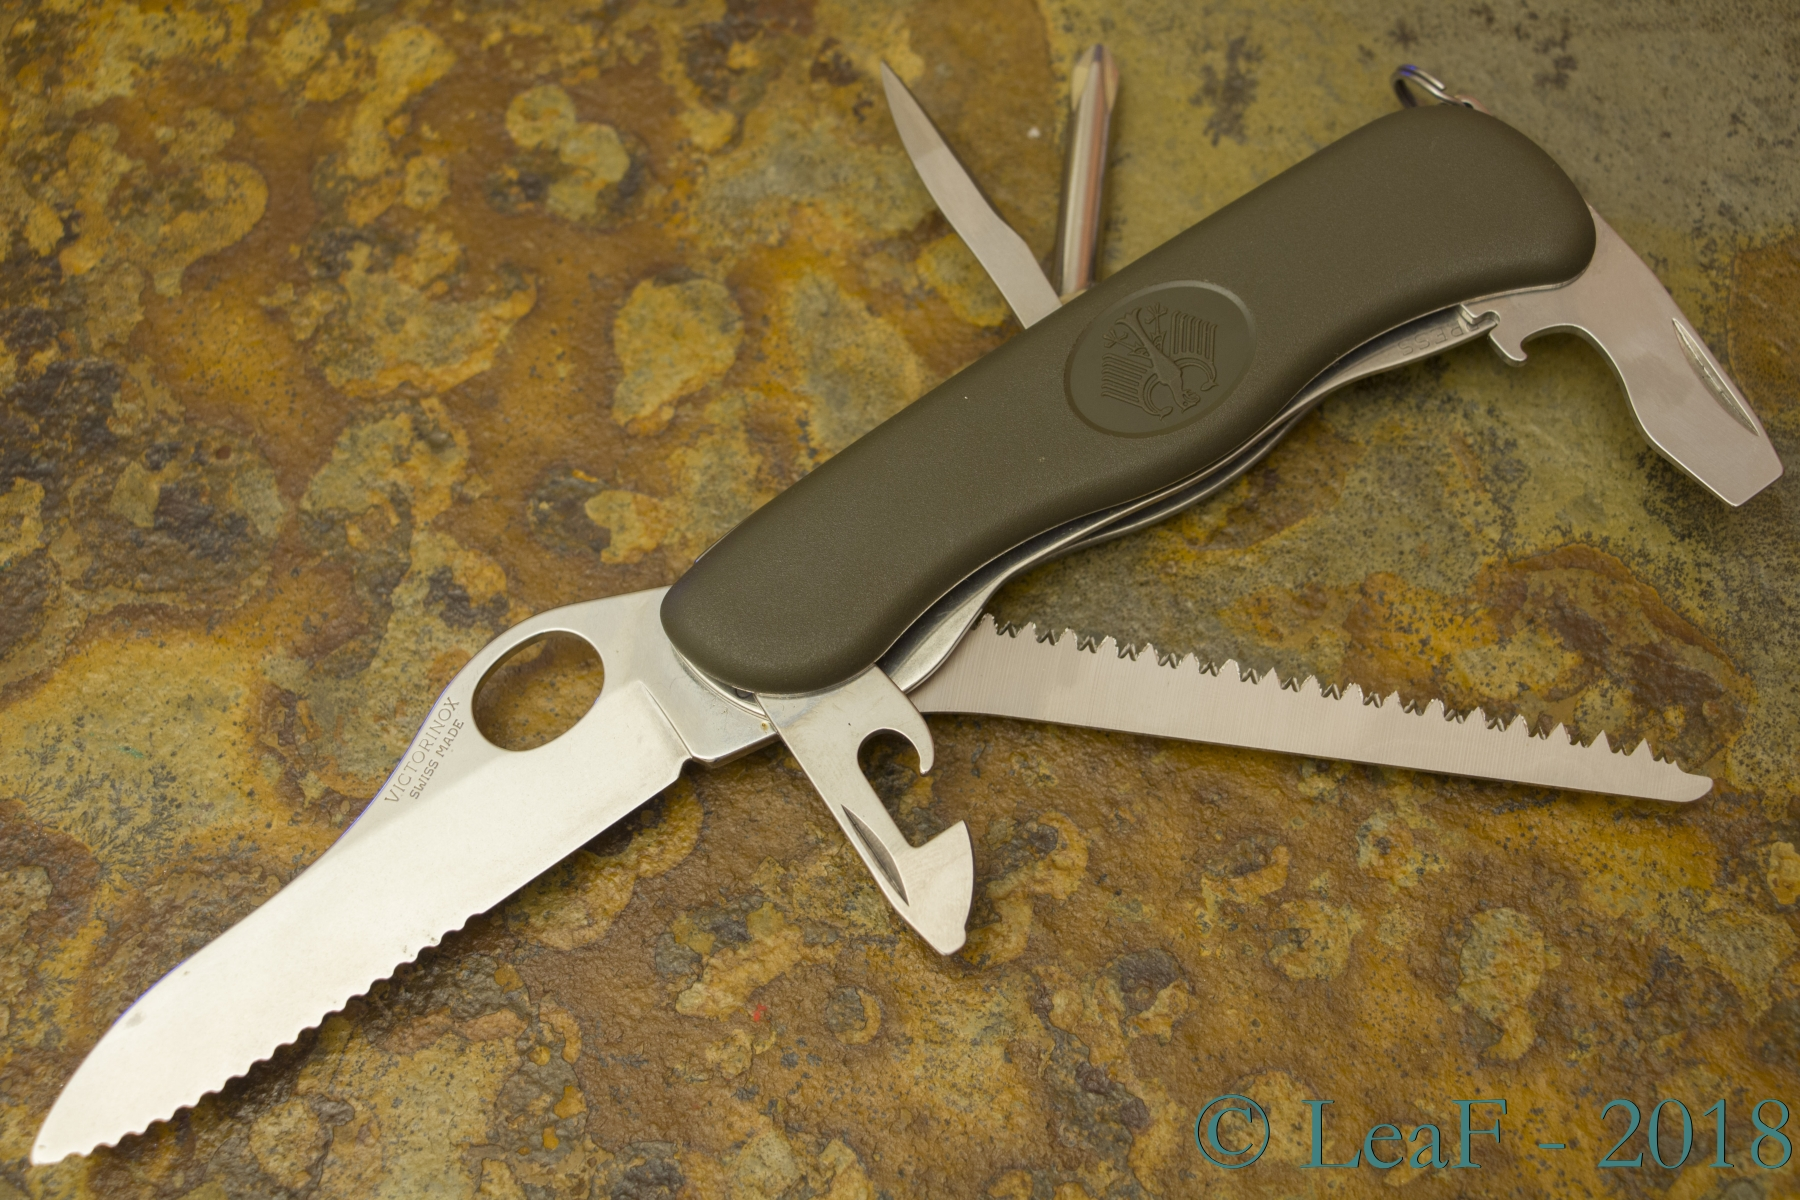 007 Gak 111 Leaf S Victorinox Knives Collection